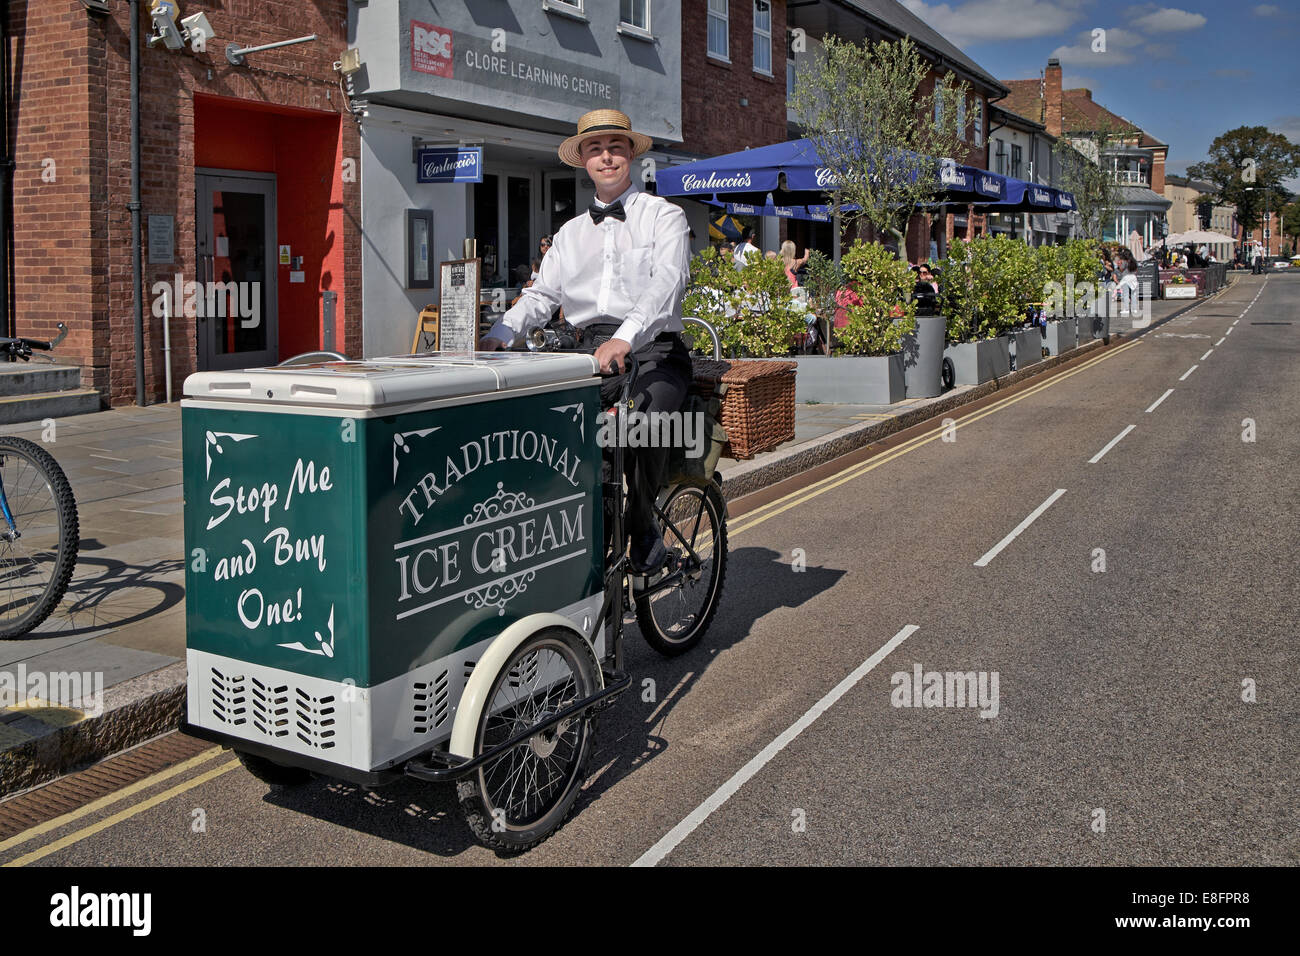 Entrepreneurial young man selling Ice cream from a vintage styled bicycle and cart in the tourist town of Stratford - Stock Image